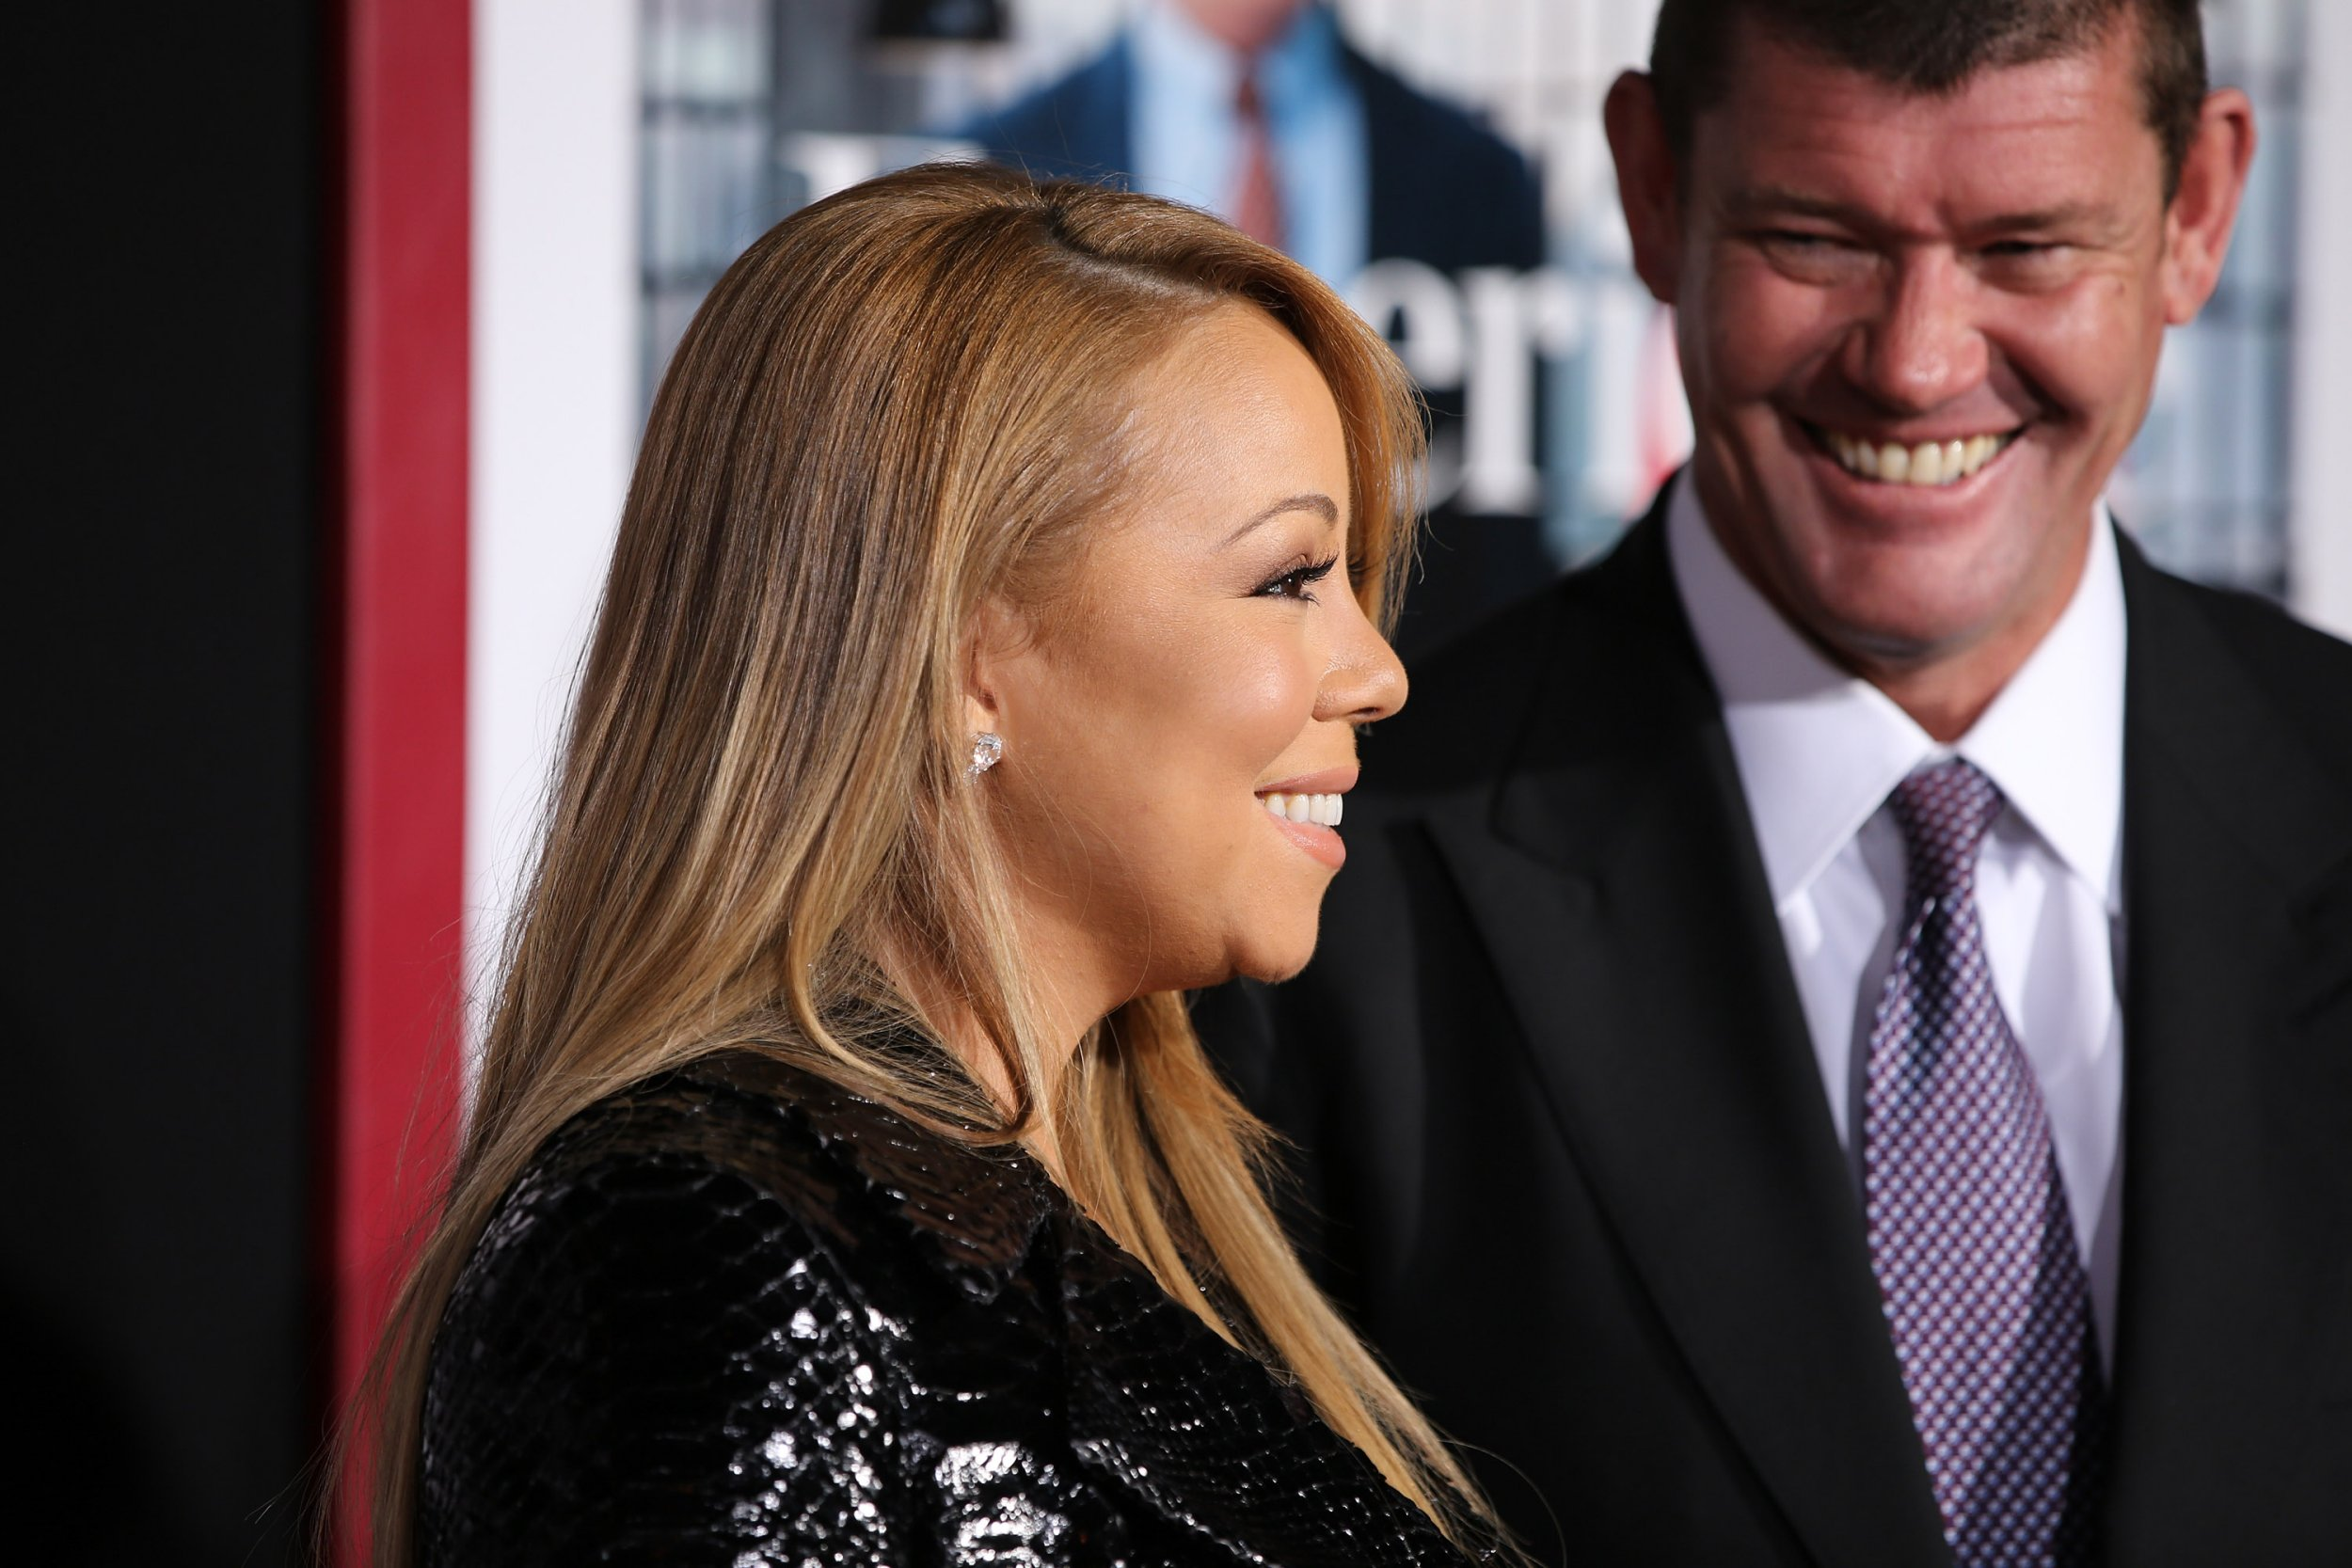 FILE - JANUARY 21: Singer Mariah Carey and Australian businessman James Packer are engaged. NEW YORK, NY - SEPTEMBER 21: Mariah Carey and James Packer attend 'The Intern' New York Premiere at Ziegfeld Theater on September 21, 2015 in New York City. (Photo by Neilson Barnard/FilmMagic)